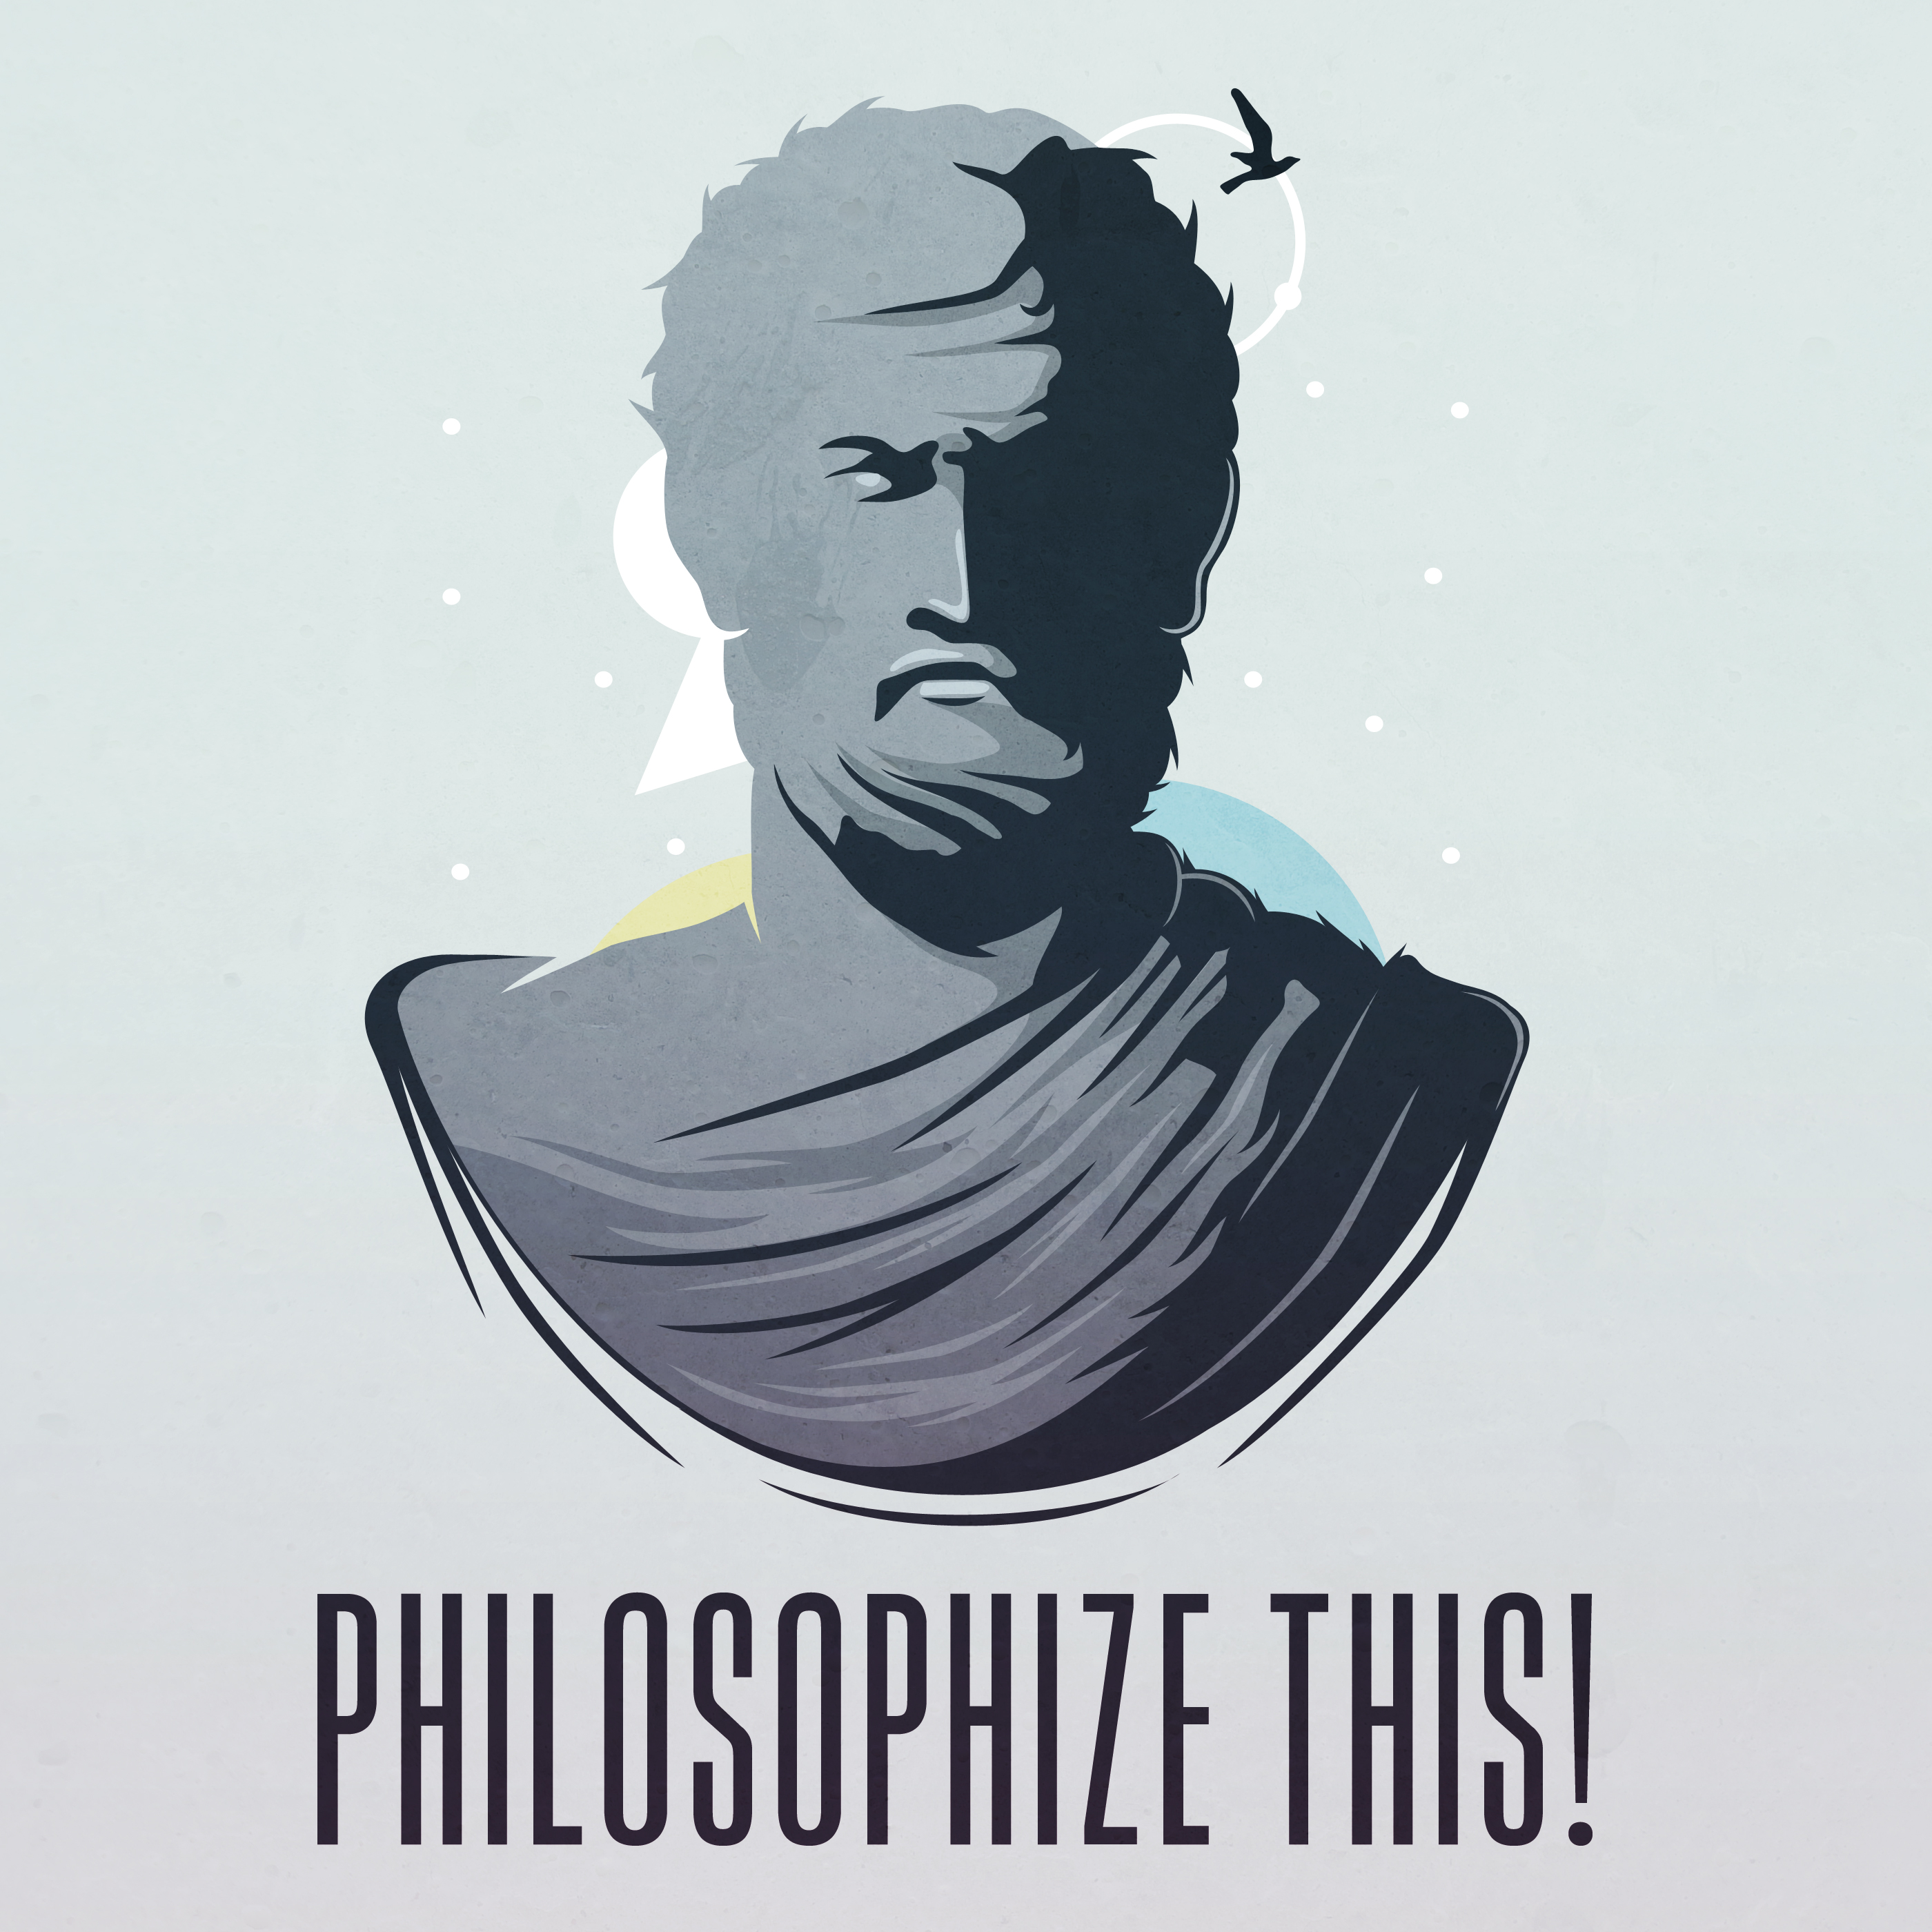 Episode #012 ... The Hellenistic Age Pt. 3 - Hallmarks of Stoic Ethics